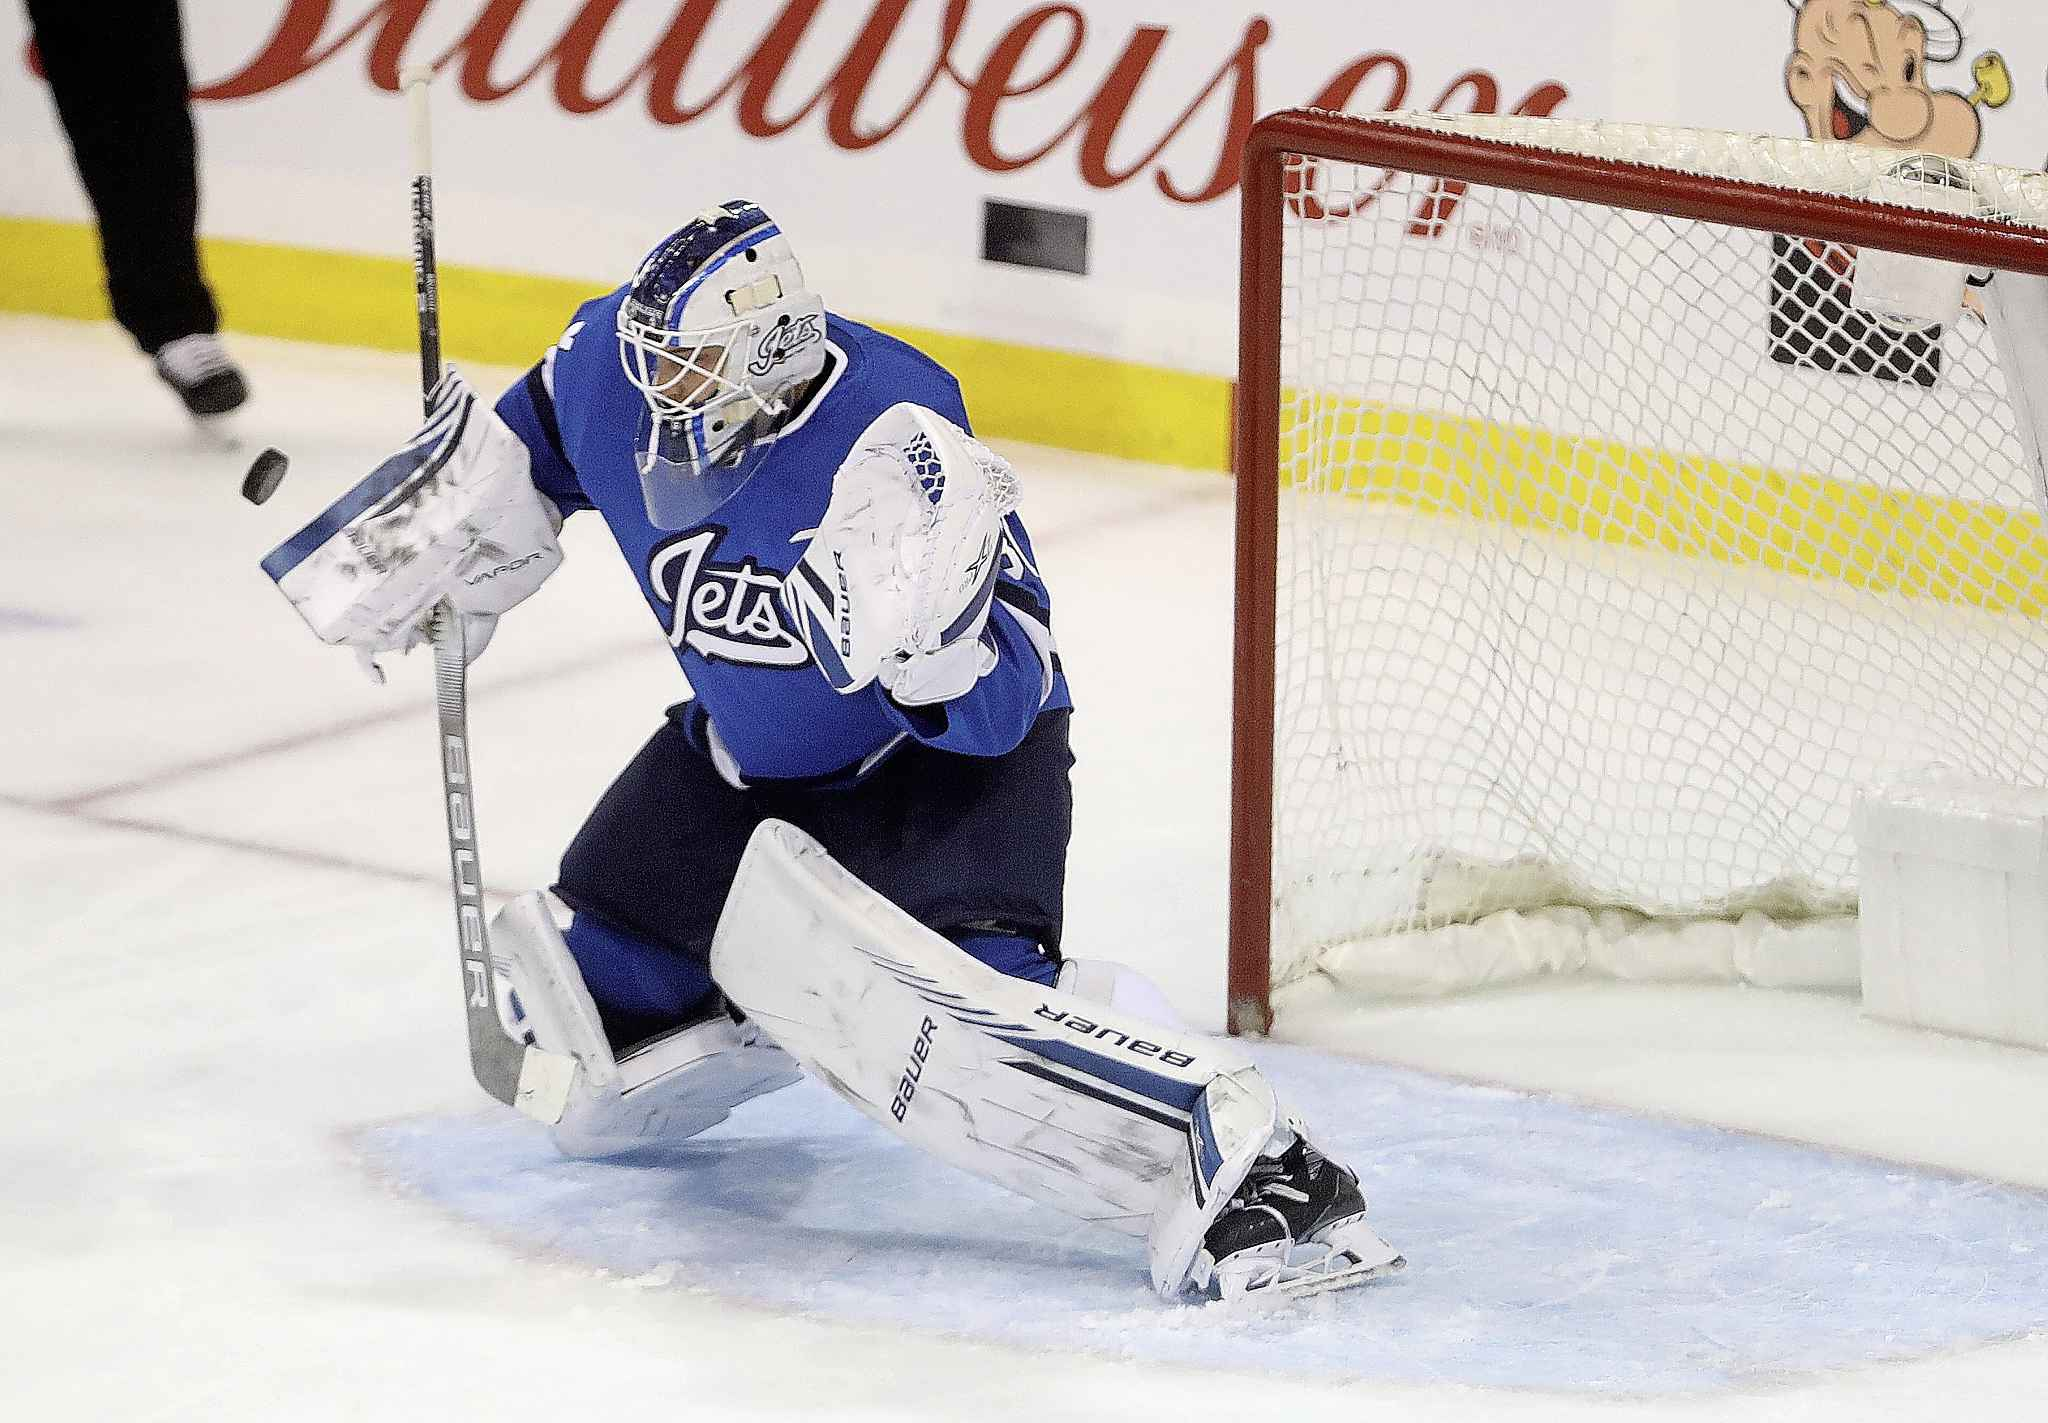 Winnipeg Jets' goaltender Laurent Brossoit makes a blocker save on a shot by the Chicago Blackhawks' during the first period in Winnipeg, Tuesday. It was the Blackhawks first shot of the game, more than 17 minutes after the first period started.